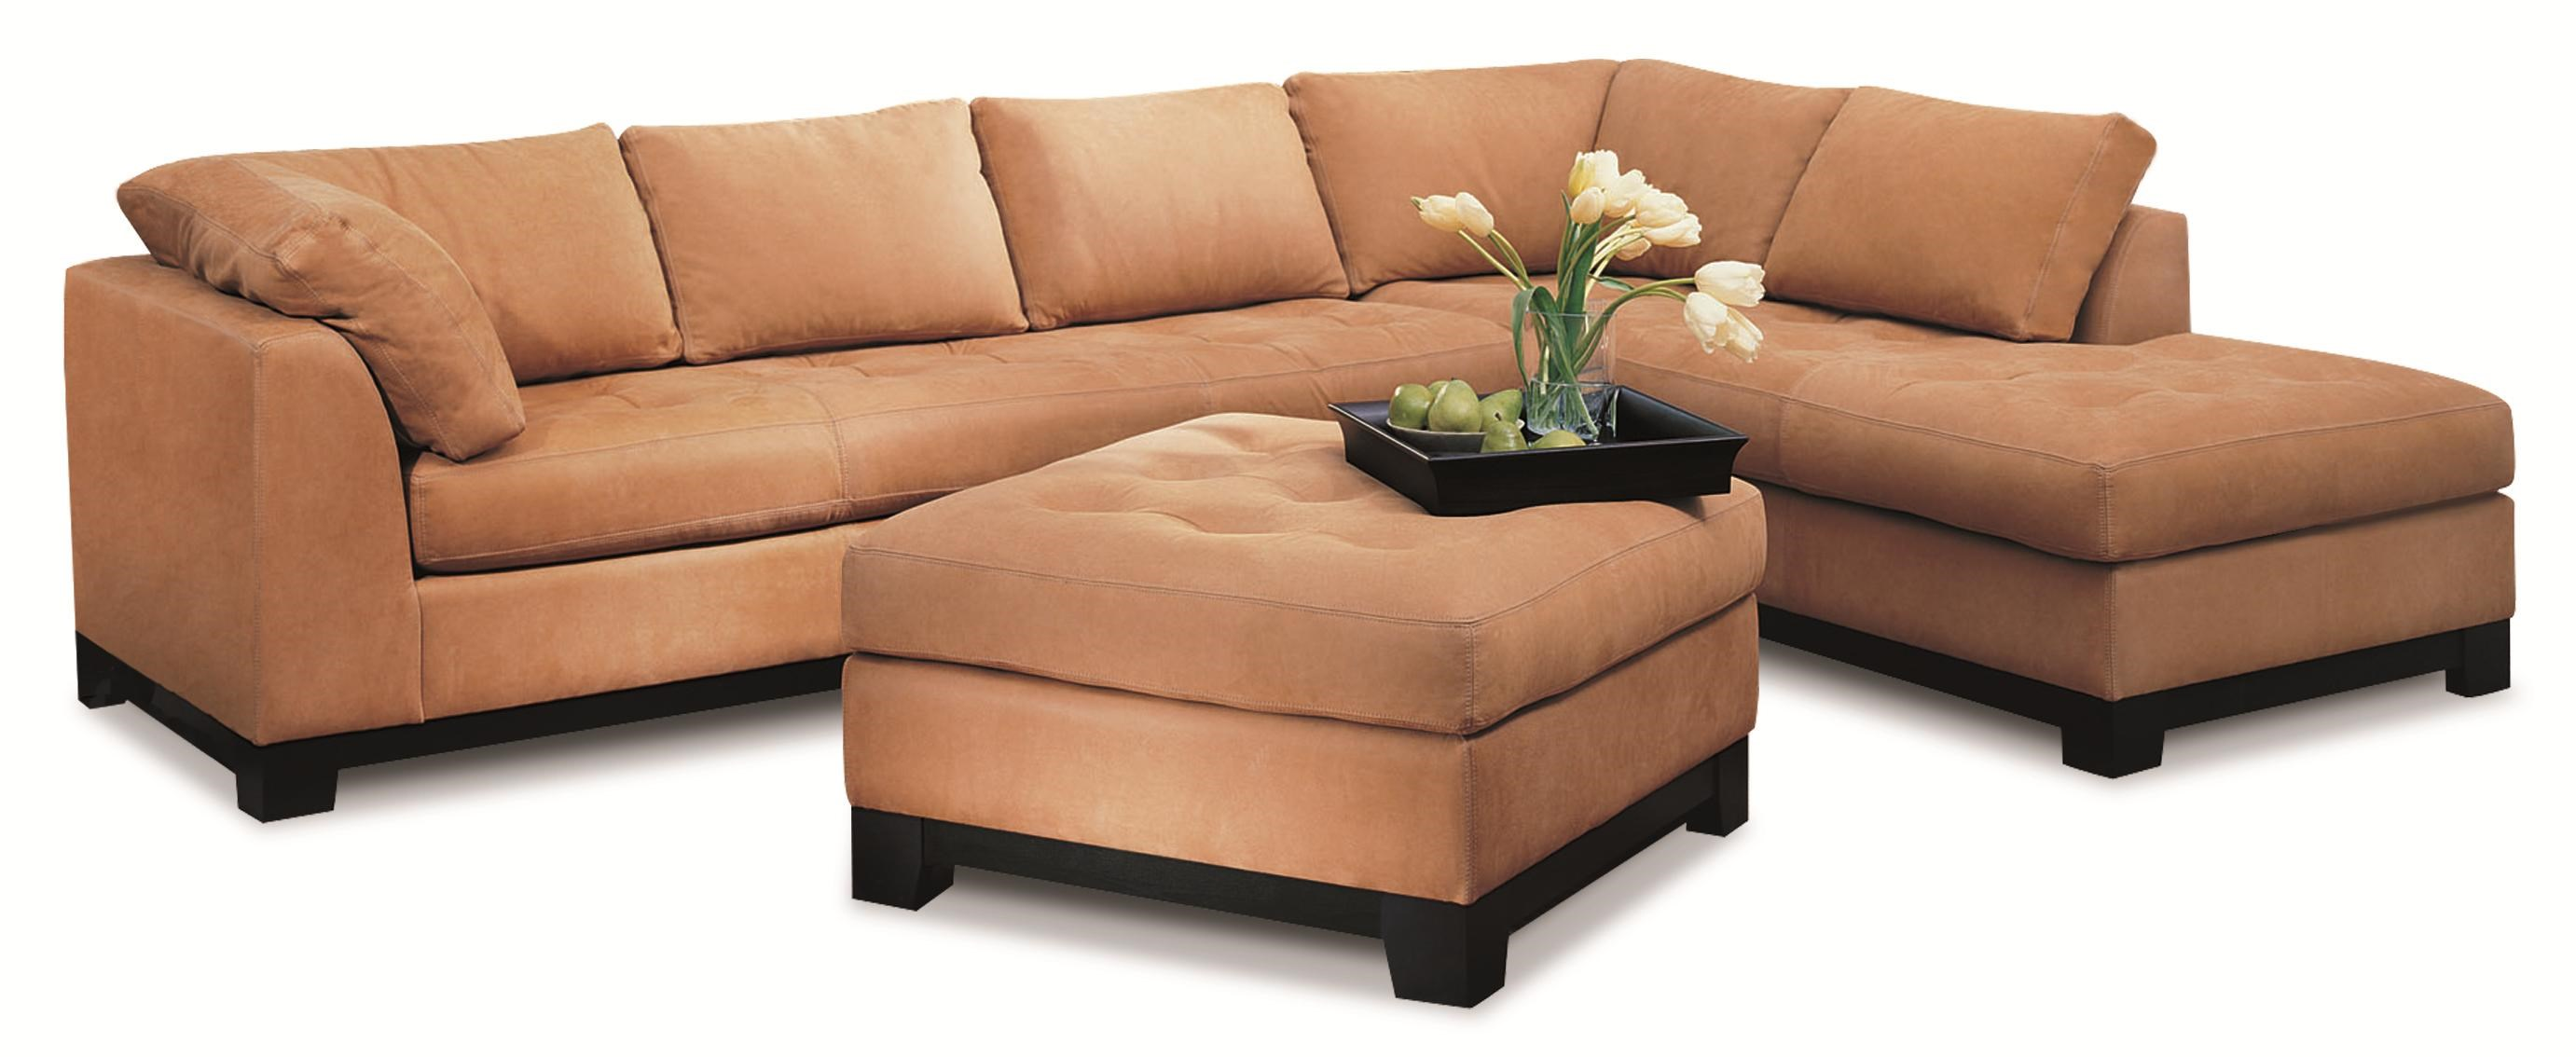 Elite Leather Century City Contemporary Leather 2 Piece Sectional Sofa With  Right Chaise